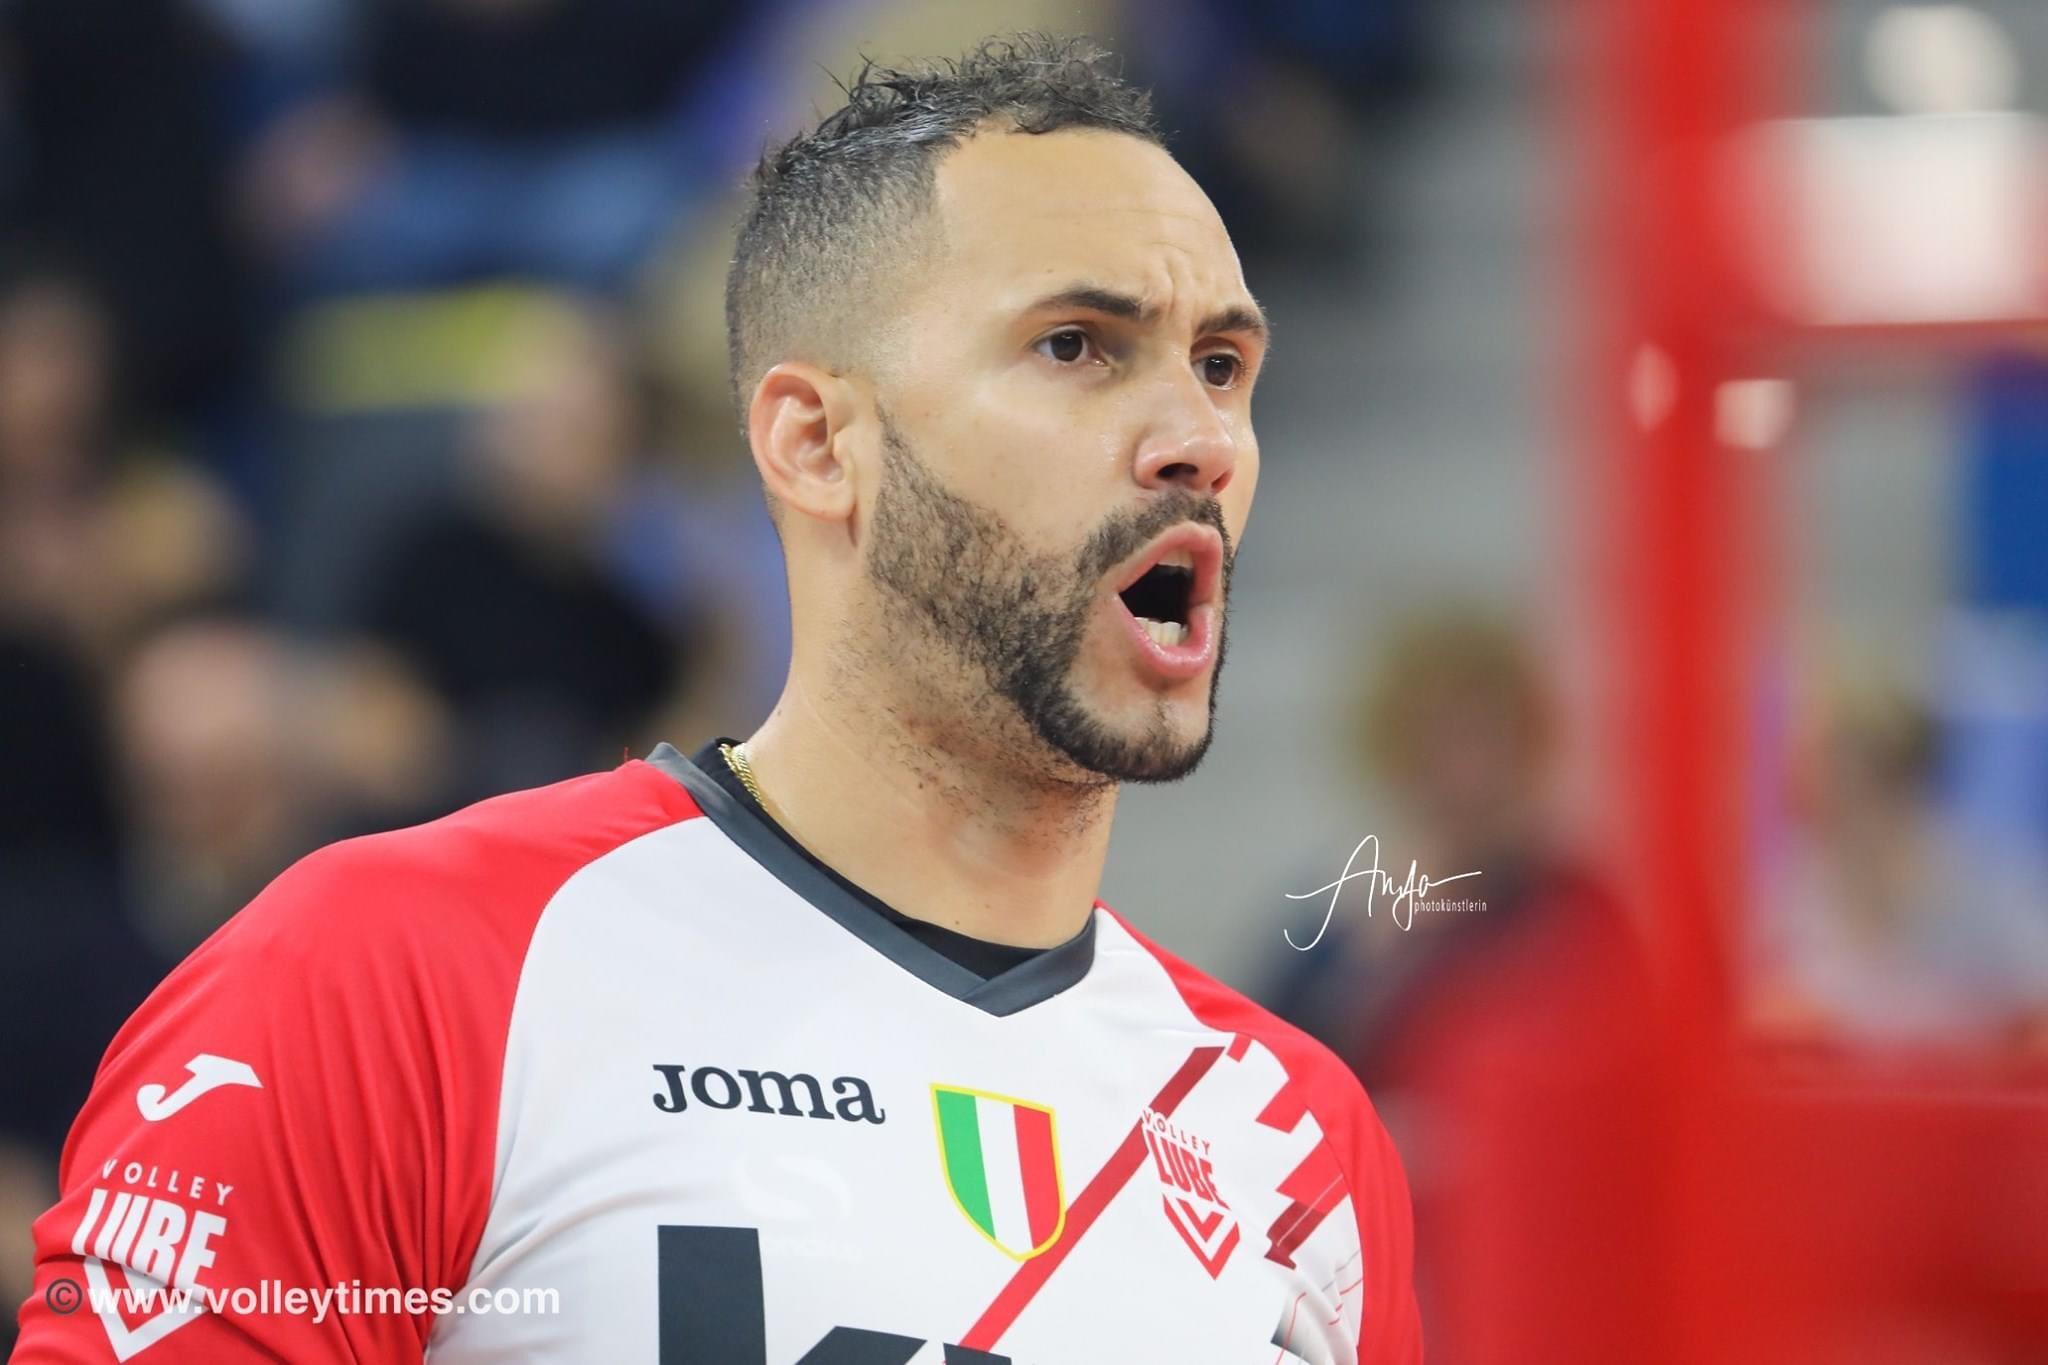 Juantorena stays in Lube, and other rumors from Civitanova